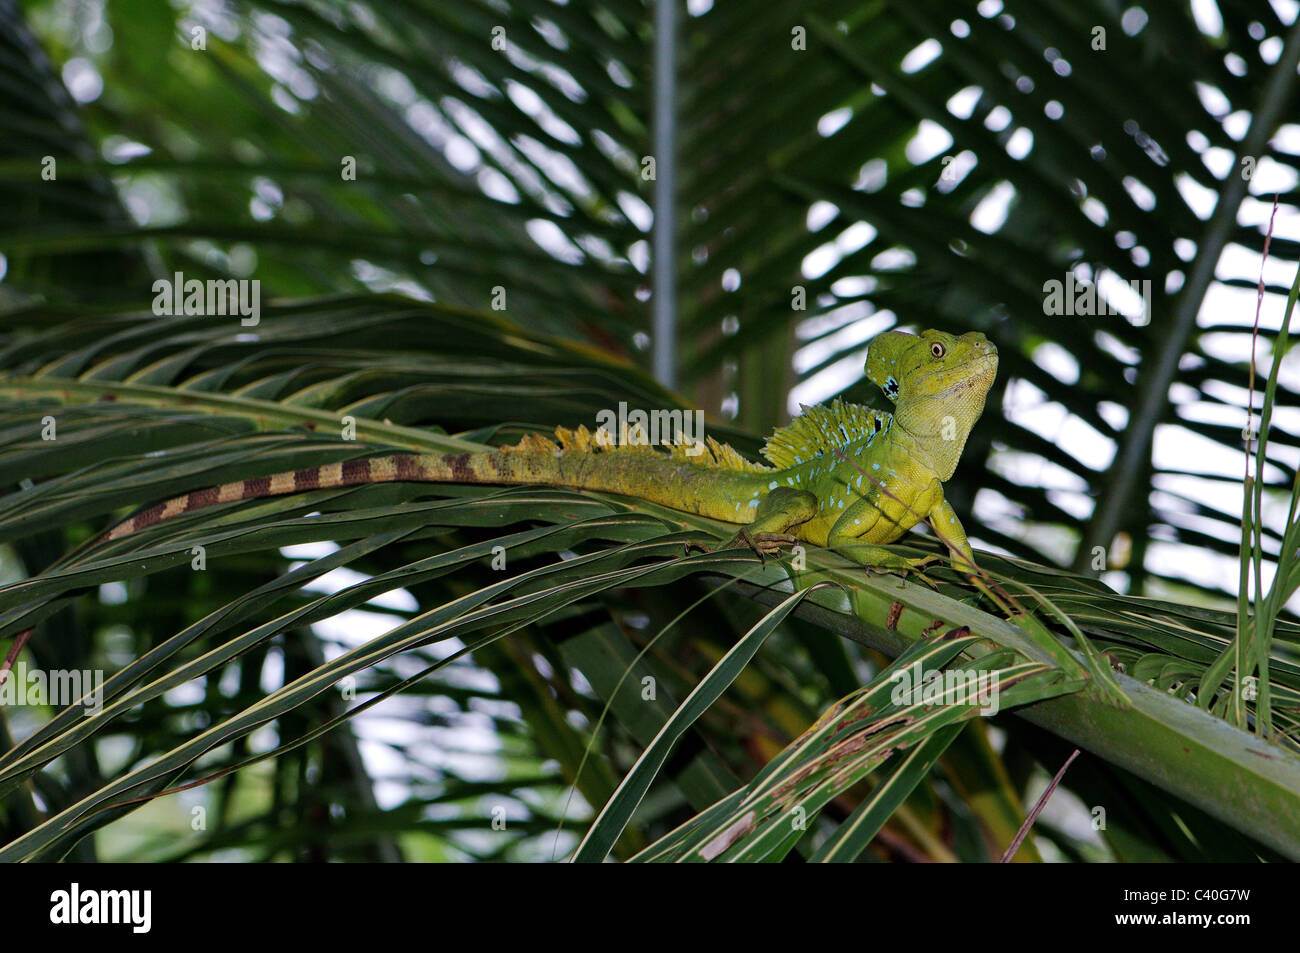 lizard, lizards, basilisc, plumed basilisc, Jesus Christ lizard, Basiliscus plumifrons, reptile, reptiles, scale, Stock Photo